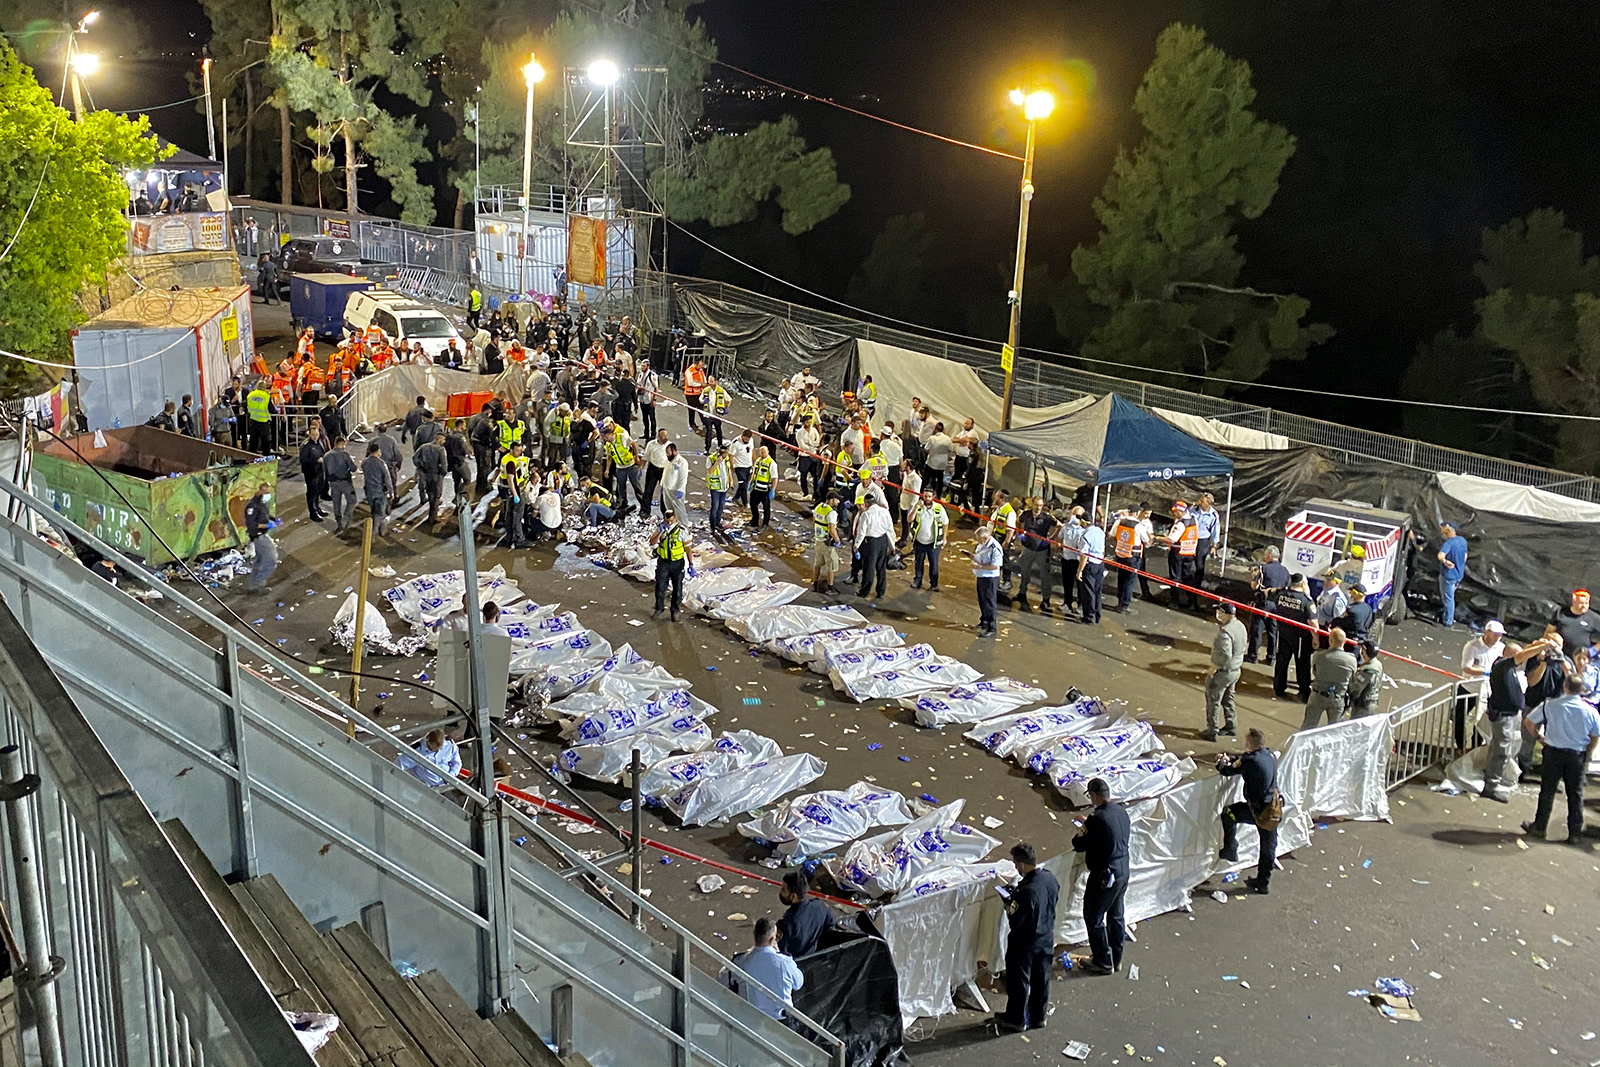 Israeli security officials and rescuers stand around the bodies of victims who died during Lag Ba'Omer celebrations at Mount Meron.